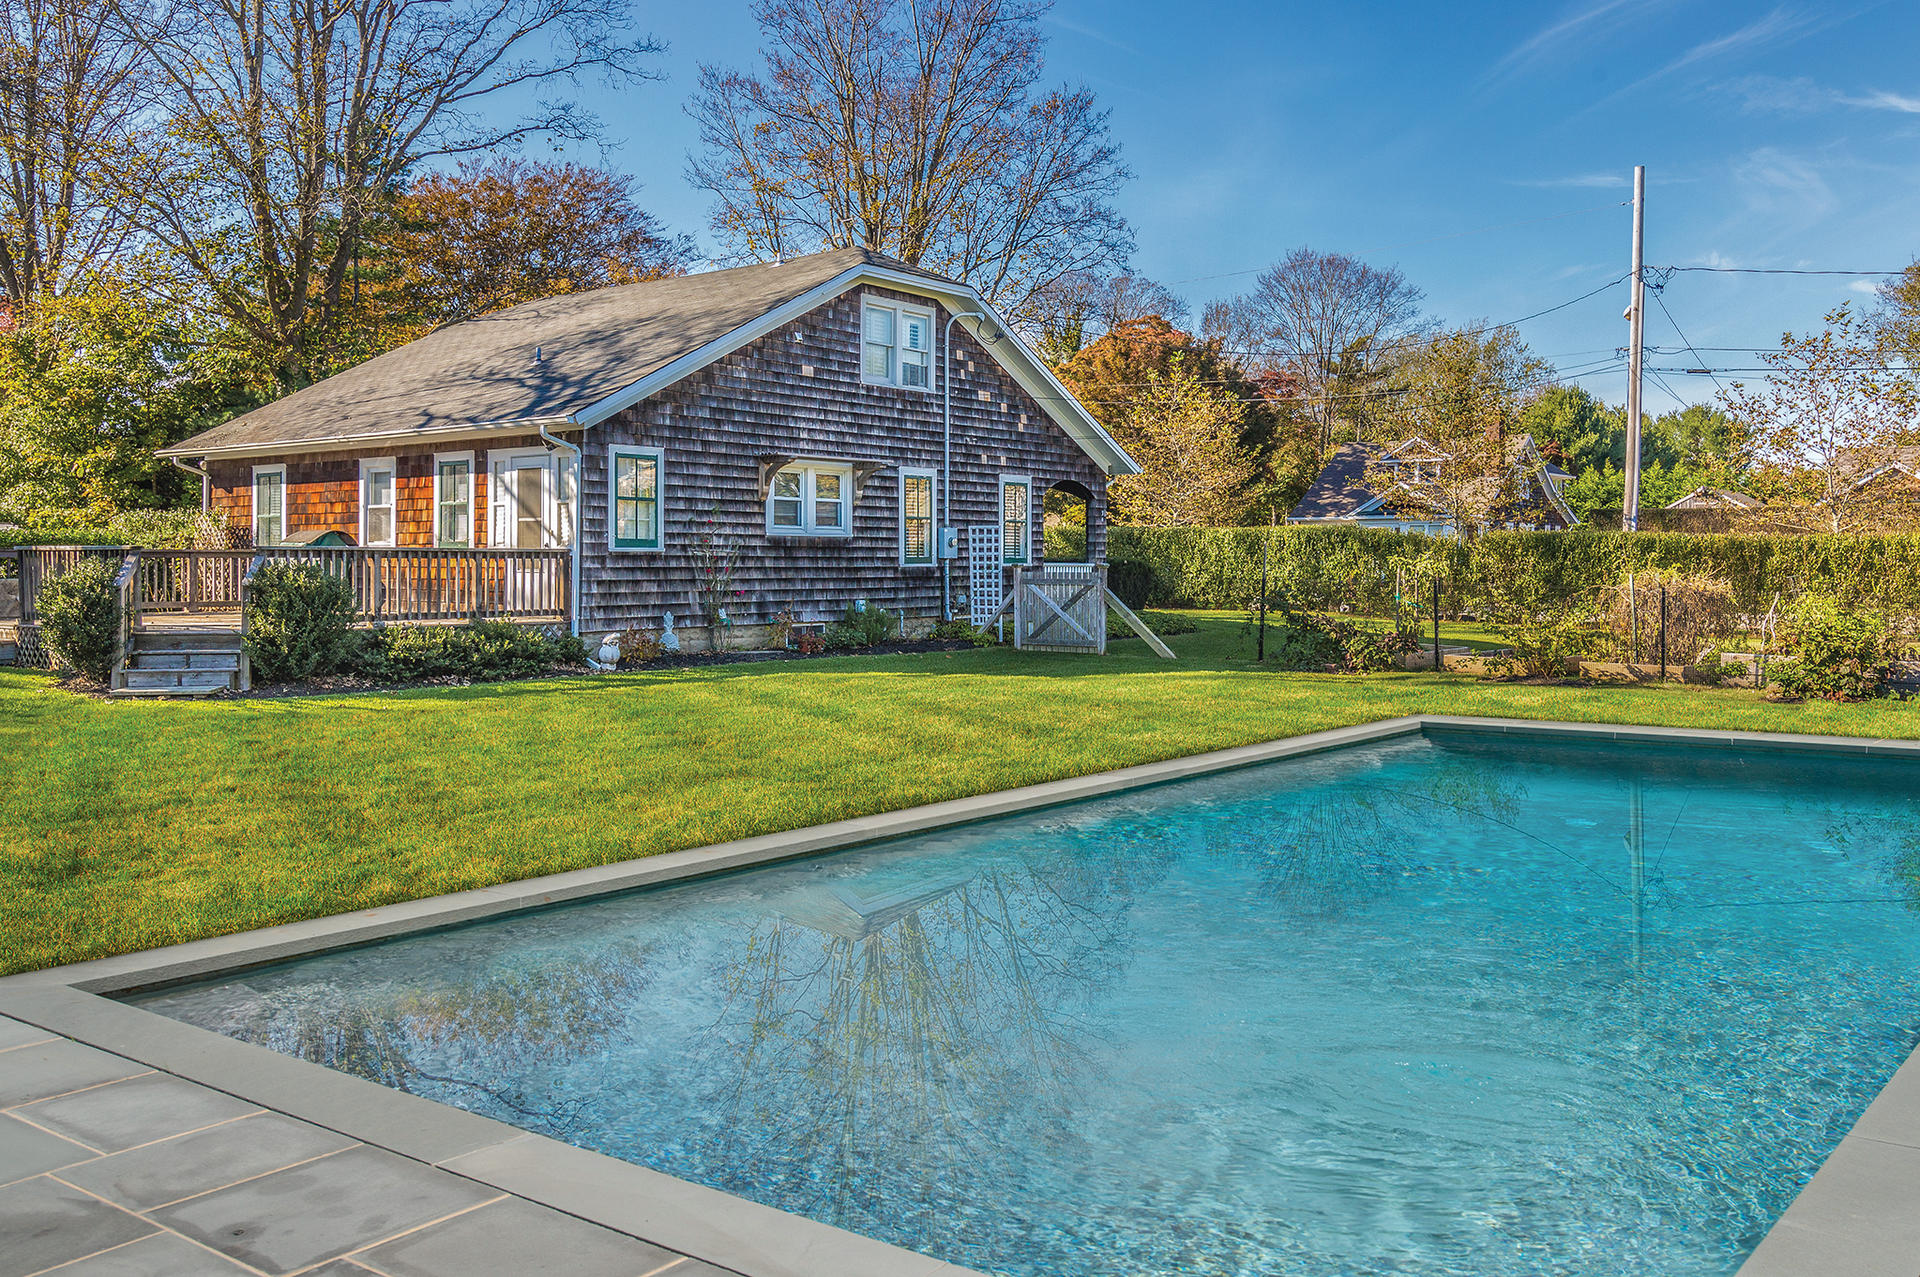 Single Family Home for Sale at Bridgehampton Beauty With Room To Grow 34 Murray Place, Bridgehampton, New York